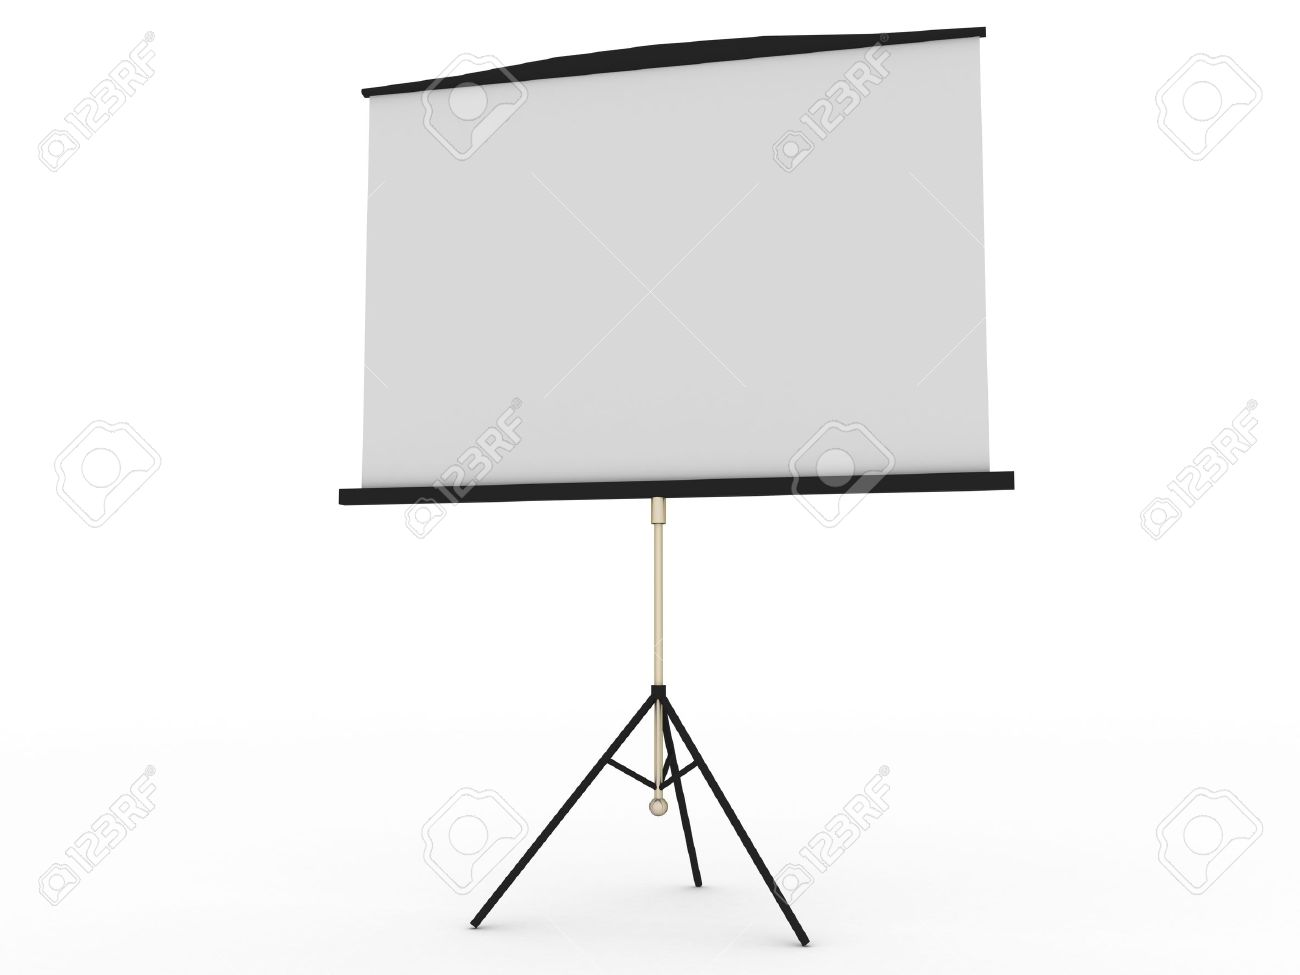 blank portable projector screen isolated on white stock photo